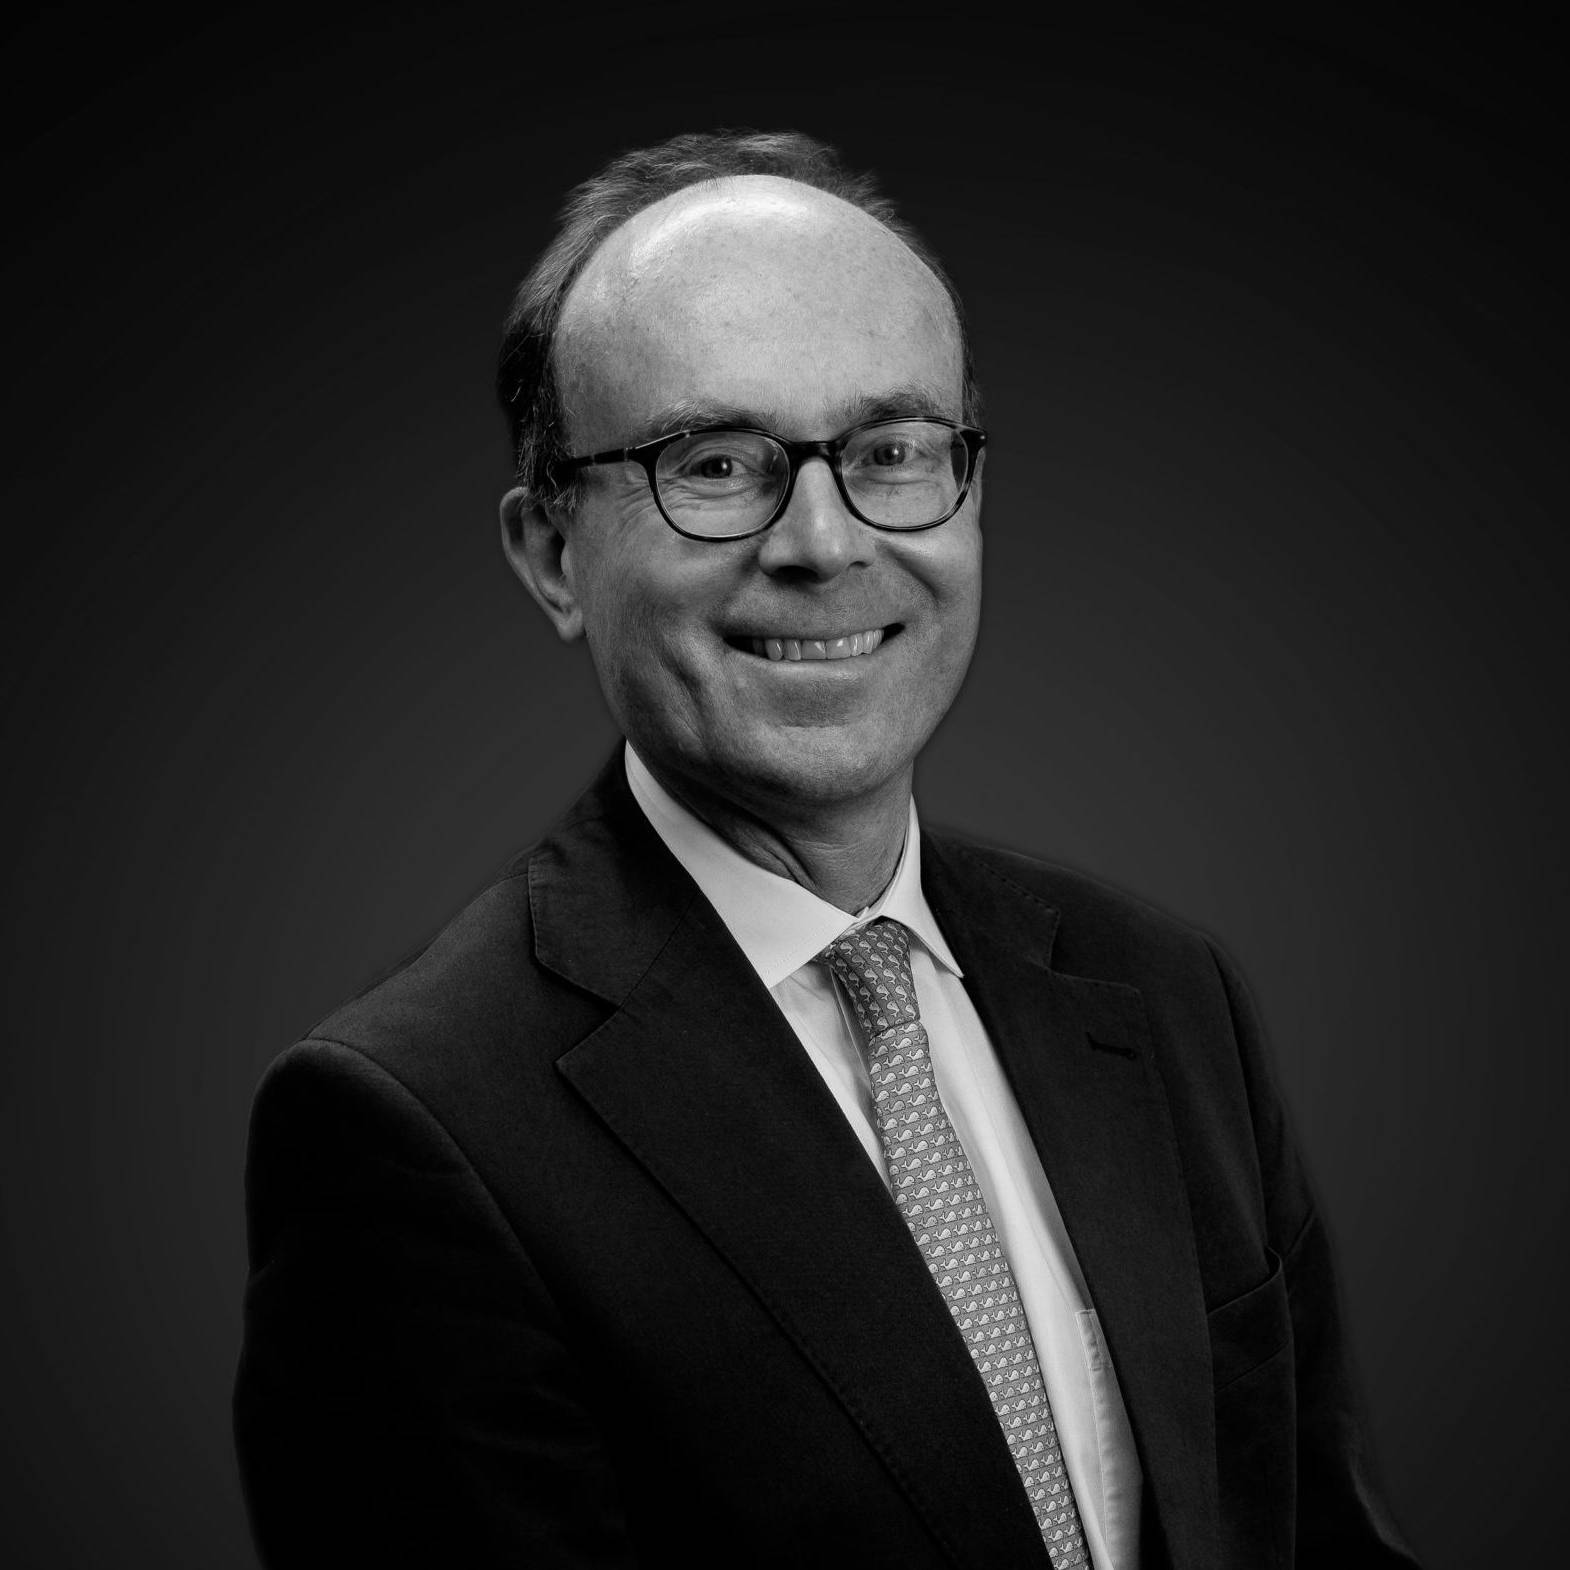 TriLake Partners Wealth Managers - Amaury Jordan, CFA CO-CHAIRMAN